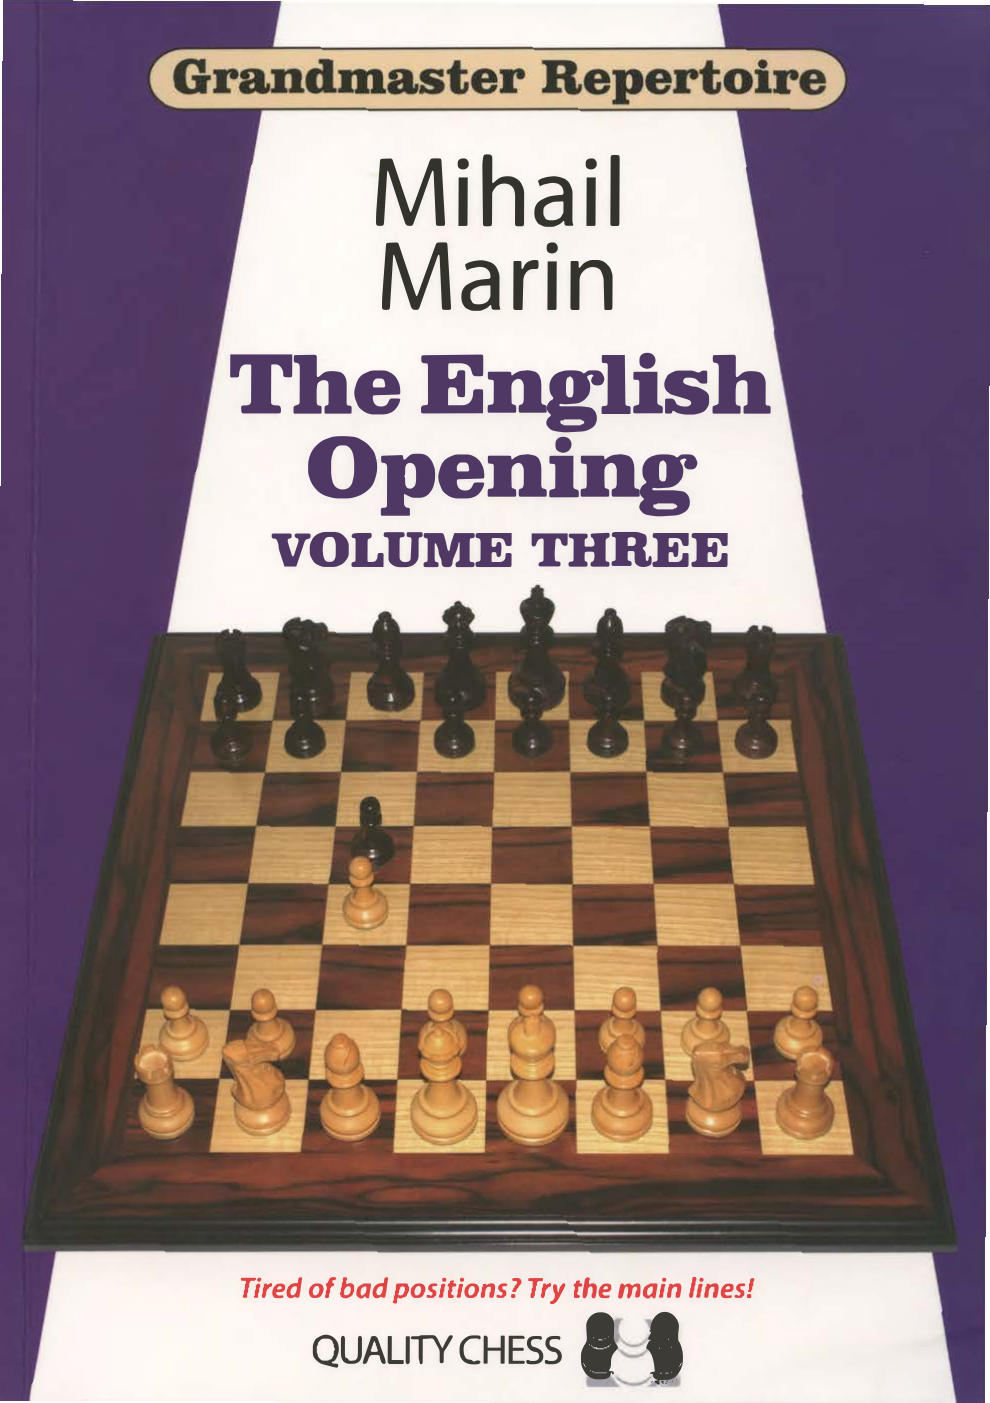 Grandmaster Repertoire 5 The English Opening vol 3